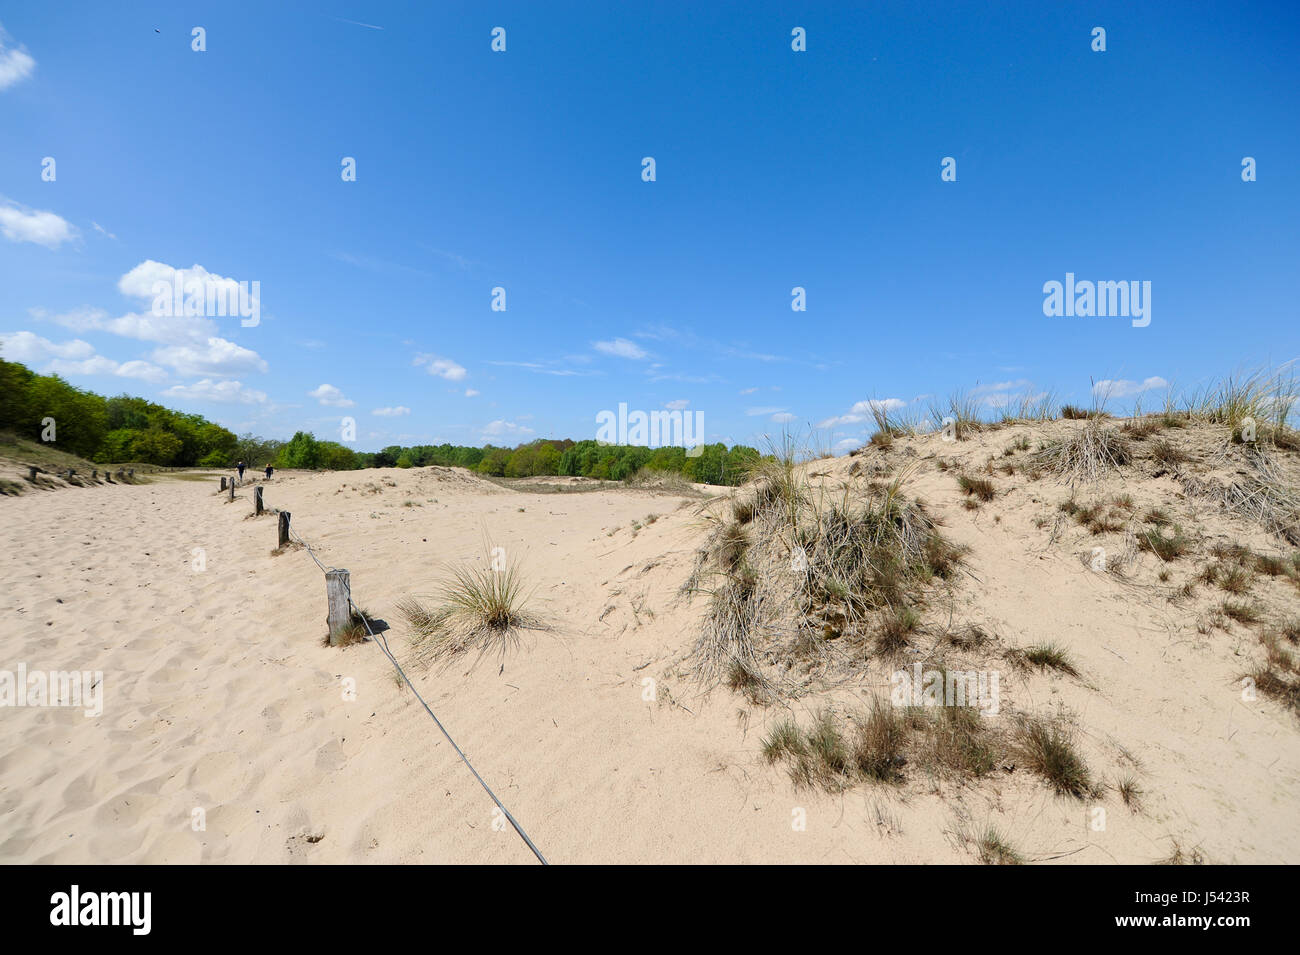 Landscape of the Boberger Dunes, or Boberger Duenen, in south west of Hamburg, Germany. Stock Photo